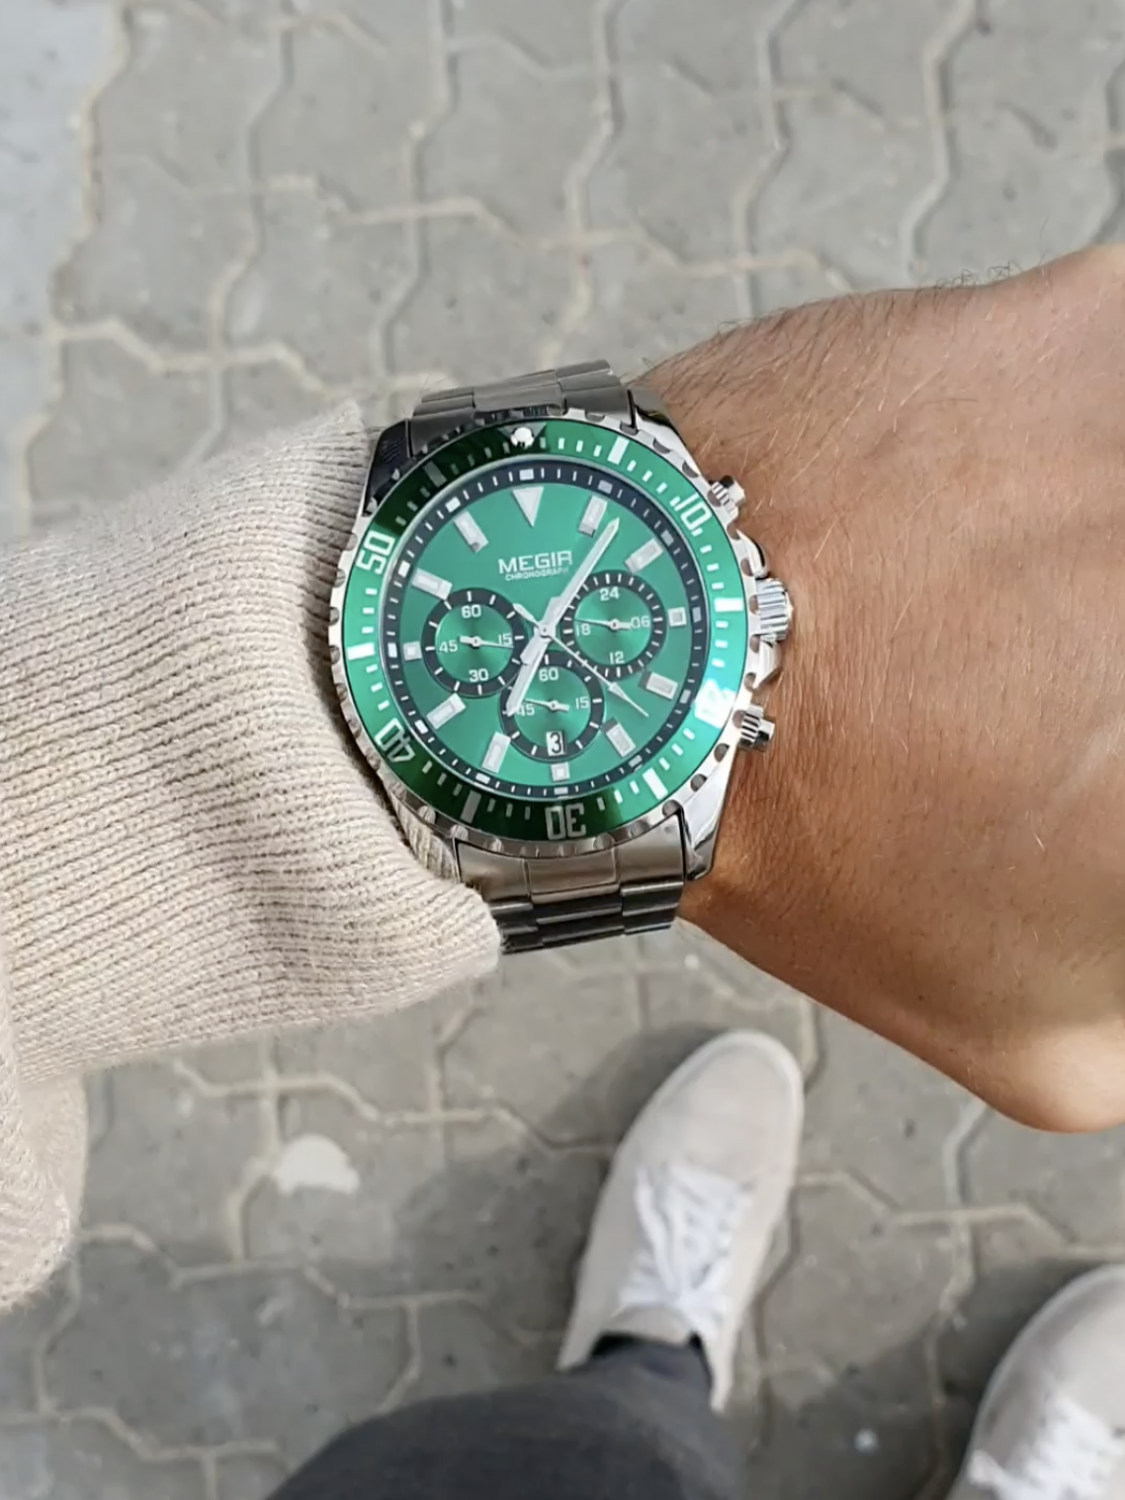 __=__youtube___Megir Aviator Steel/Green___https://www.youtube.com/embed/5XX0Bffj988___5XX0Bffj988